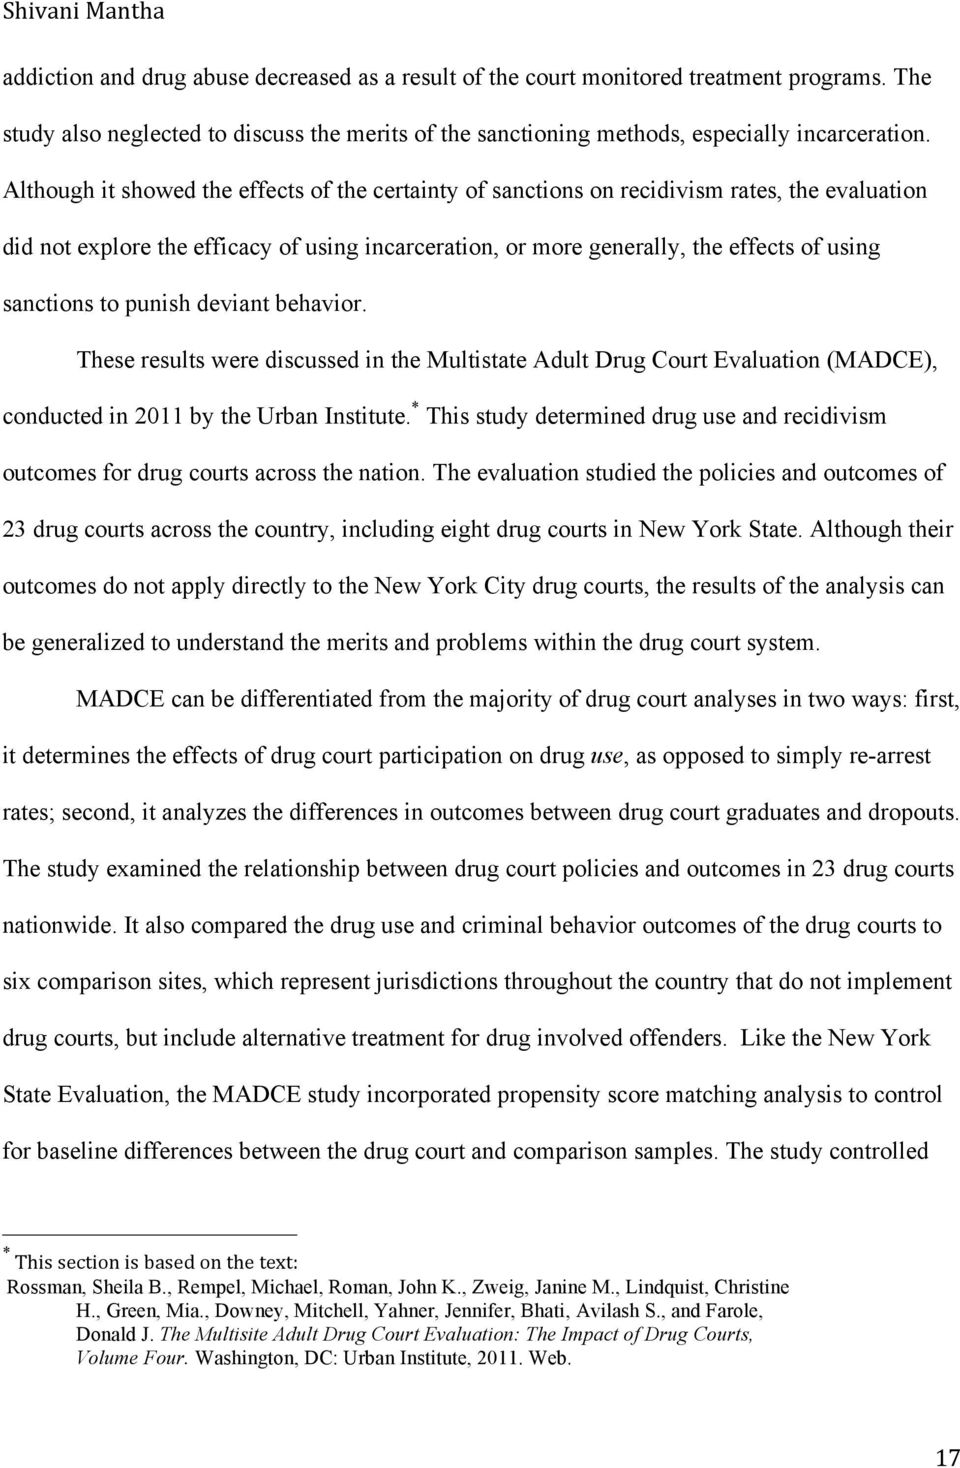 to punish deviant behavior. These results were discussed in the Multistate Adult Drug Court Evaluation (MADCE), conducted in 2011 by the Urban Institute.